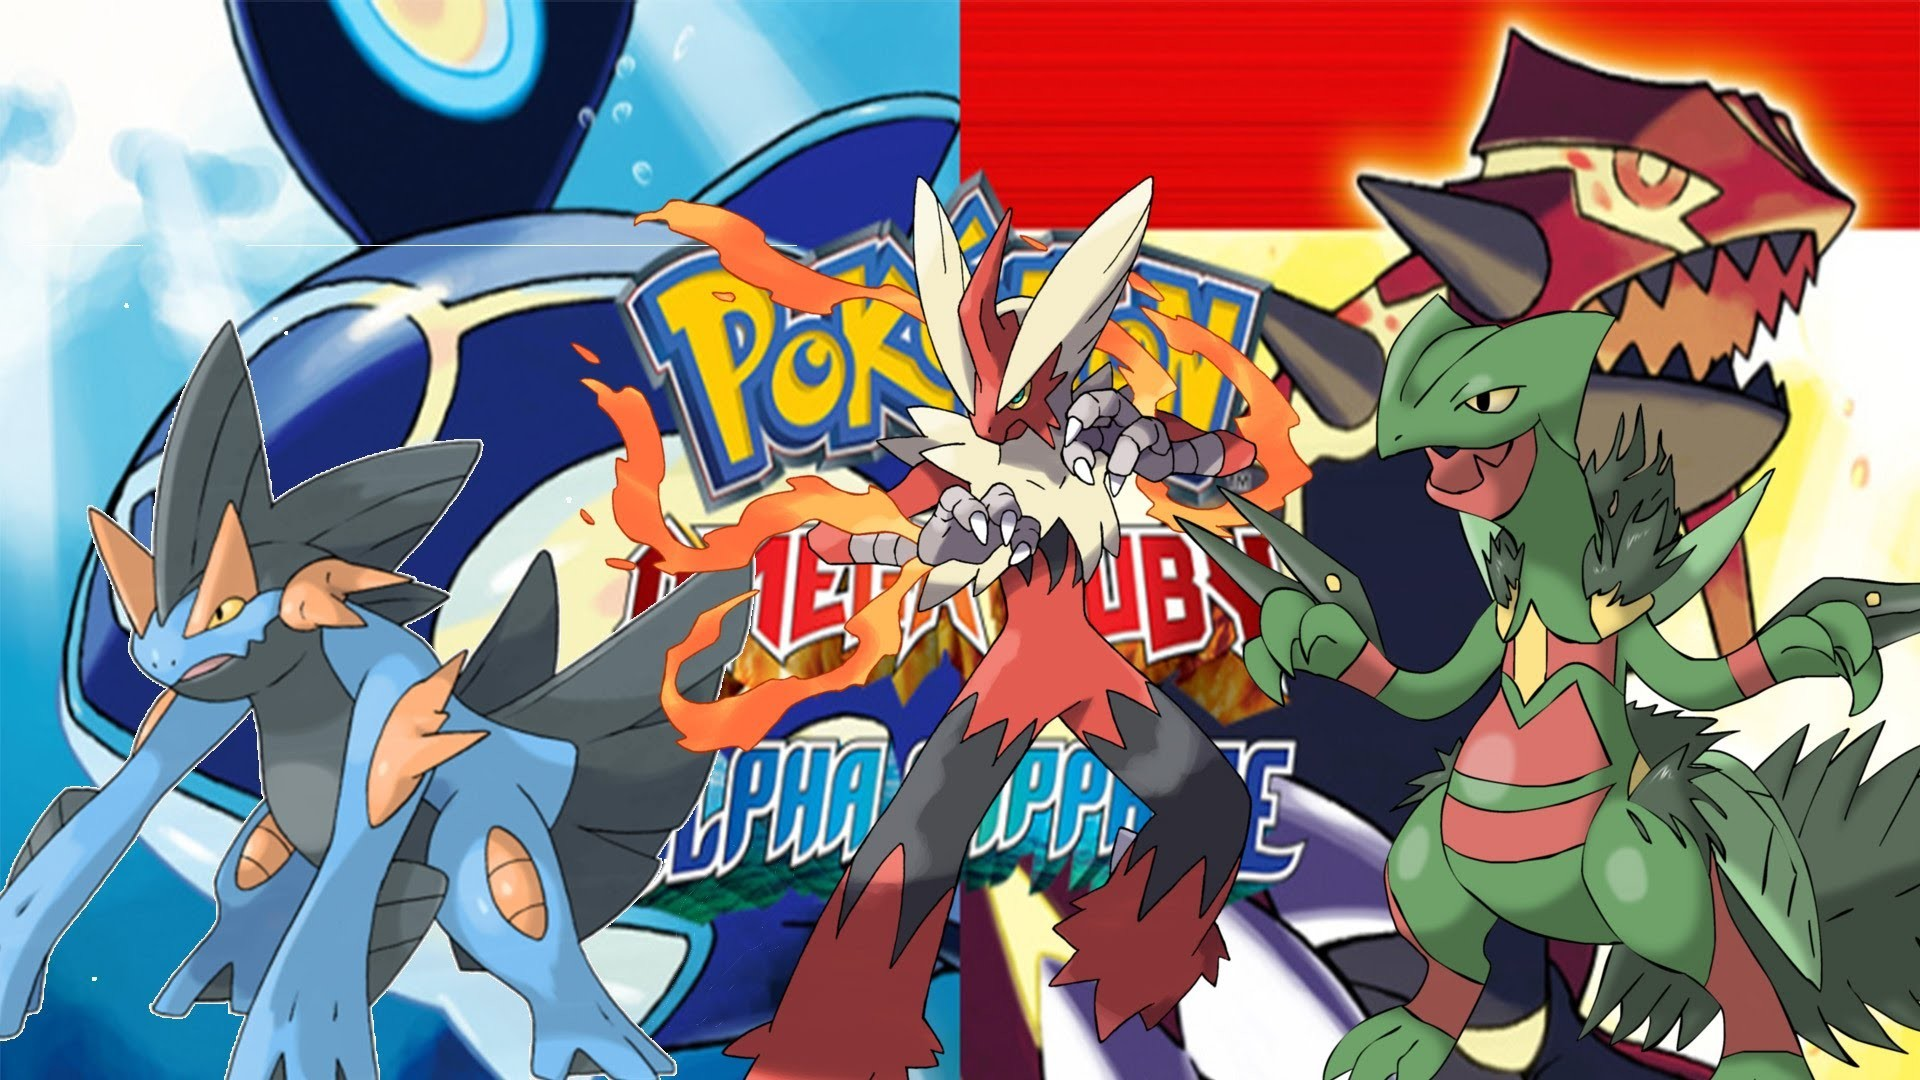 1920x1080 Pokémon: Omega Ruby and Alpha Sapphire HD Wallpaper | Hintergrund |   | ID:549809 - Wallpaper Abyss